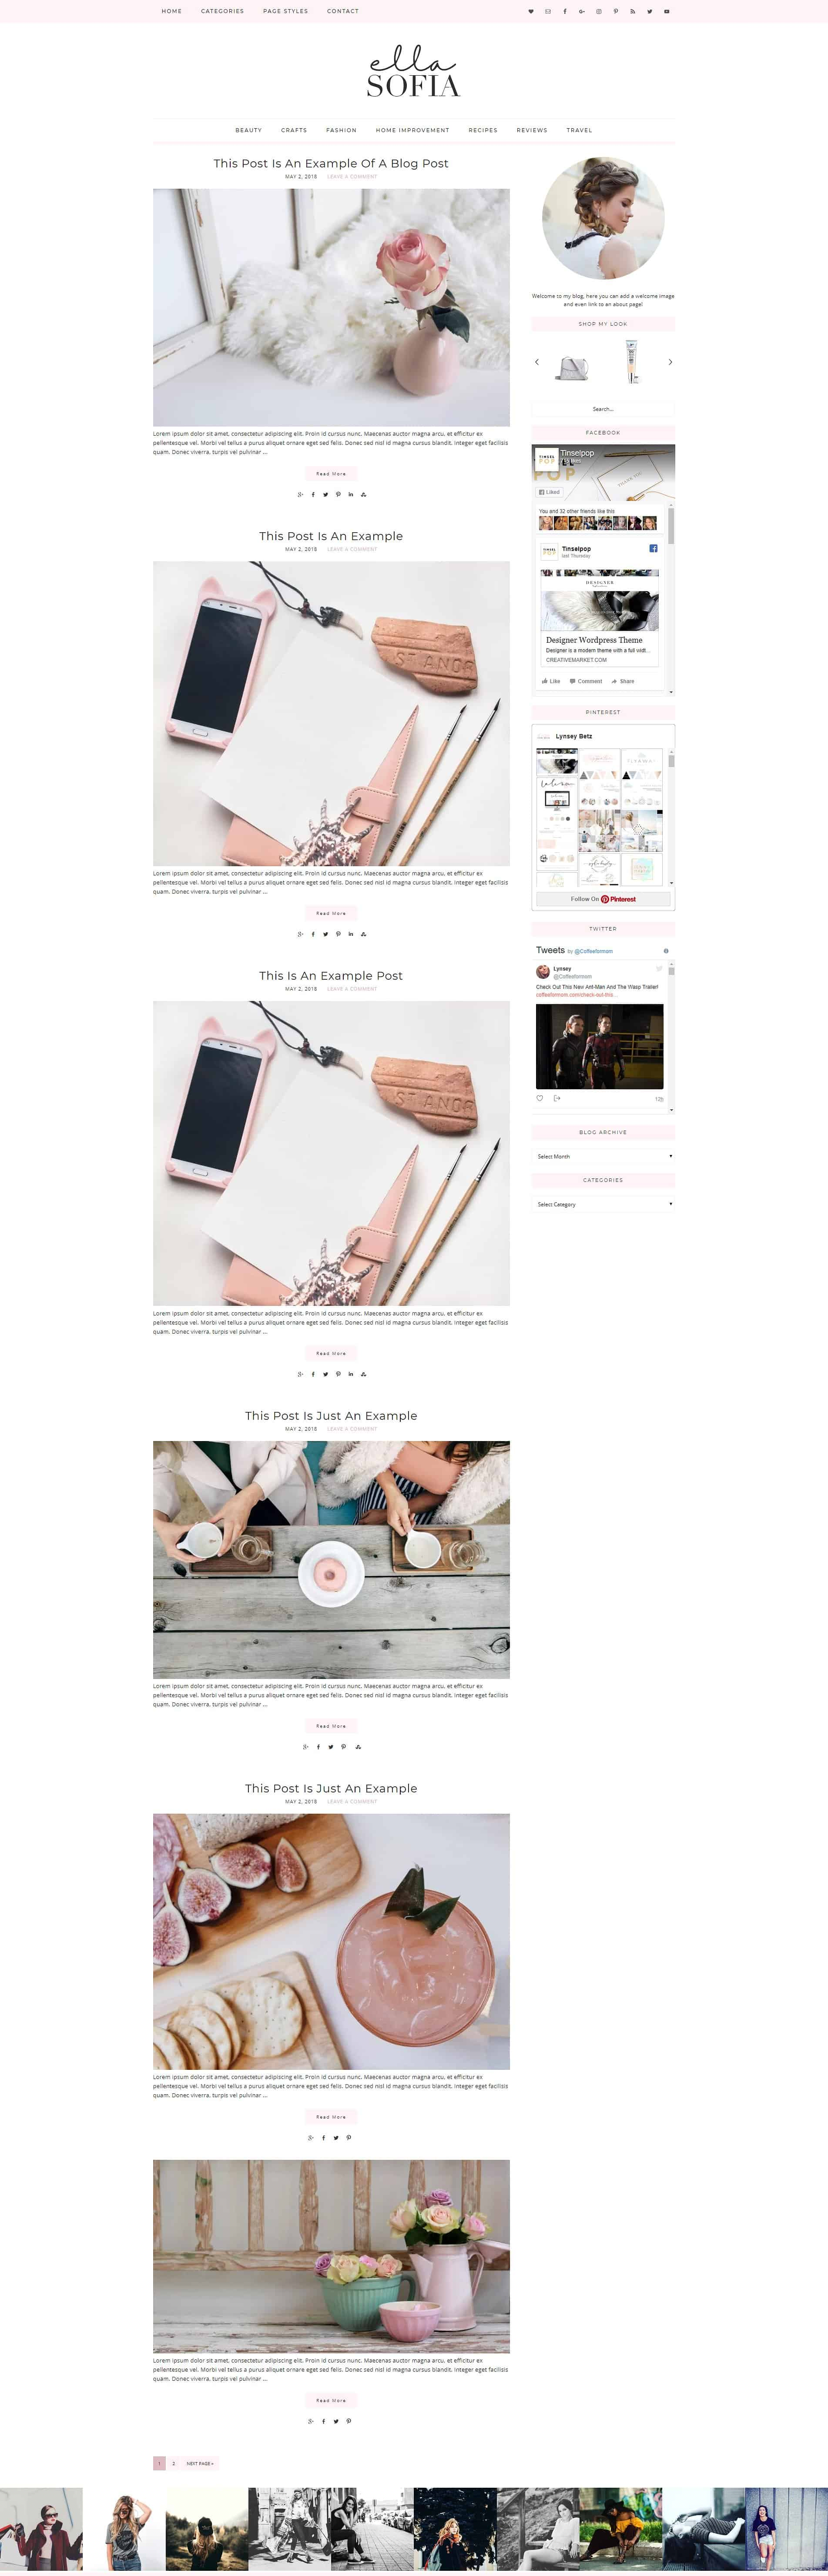 Feminine Cheap WordPress Theme - Ella Sofia